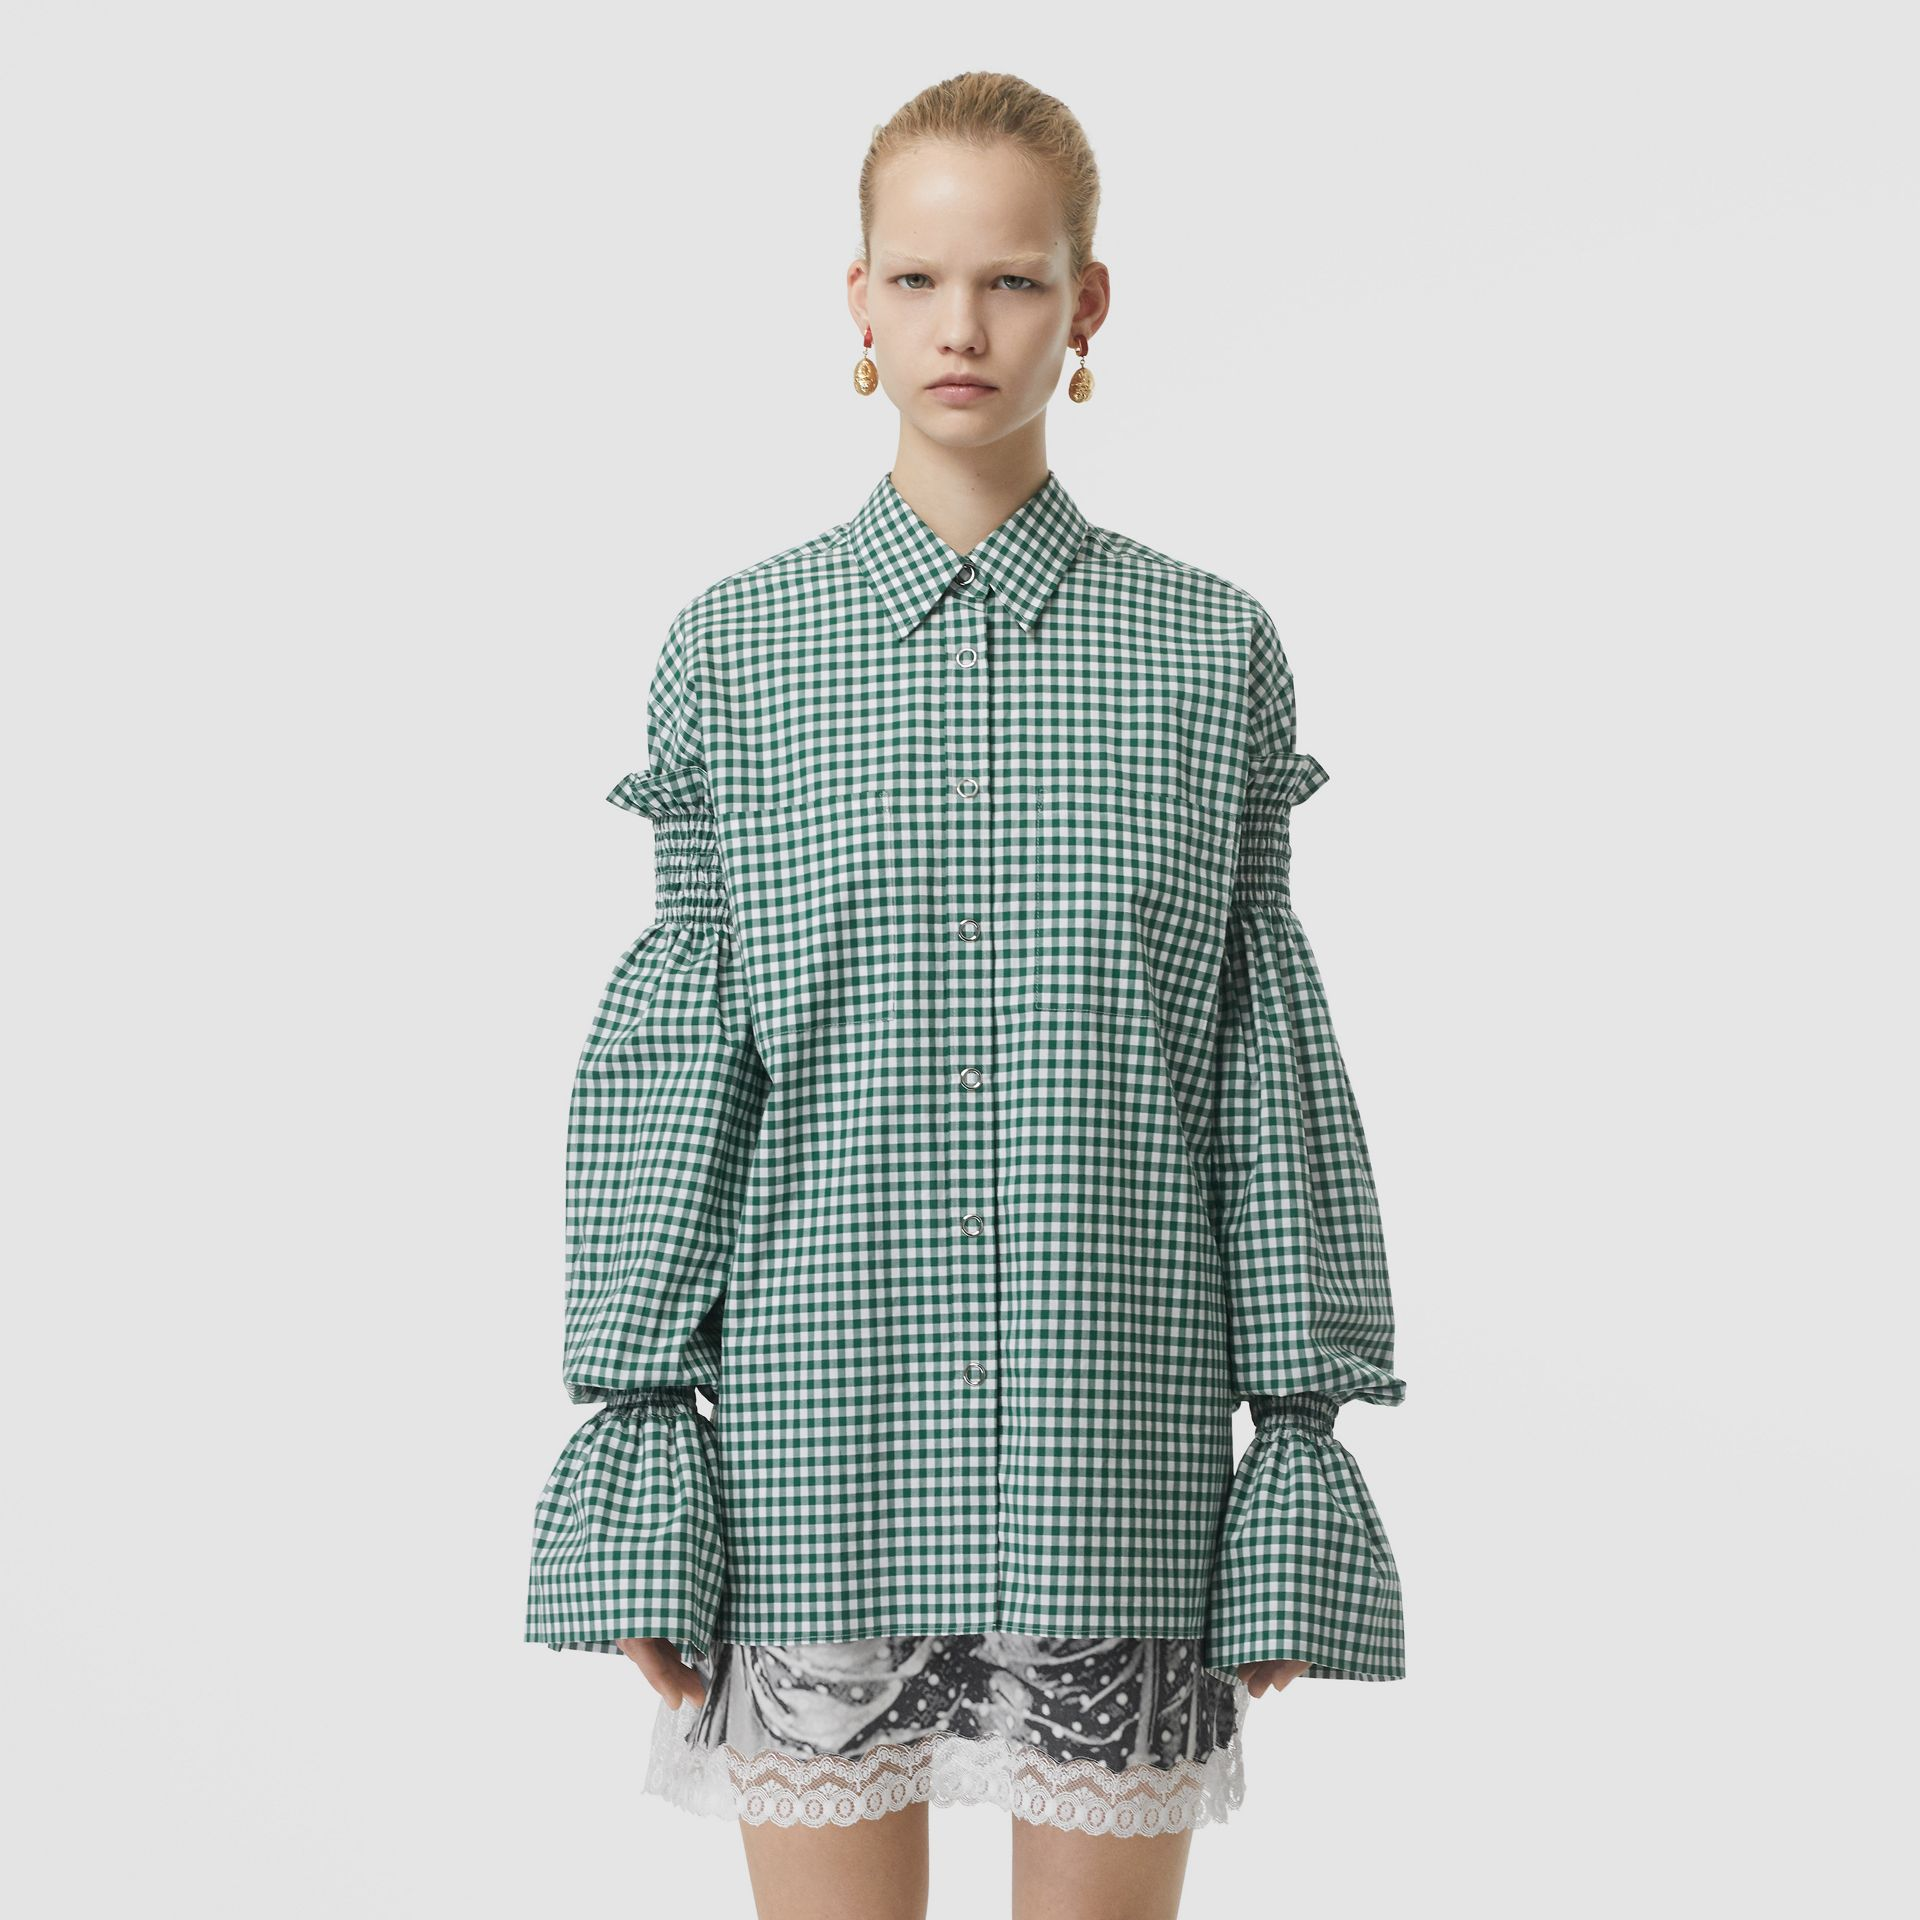 Puff-sleeve Gingham Cotton Oversized Shirt in White/green - Women | Burberry - gallery image 5